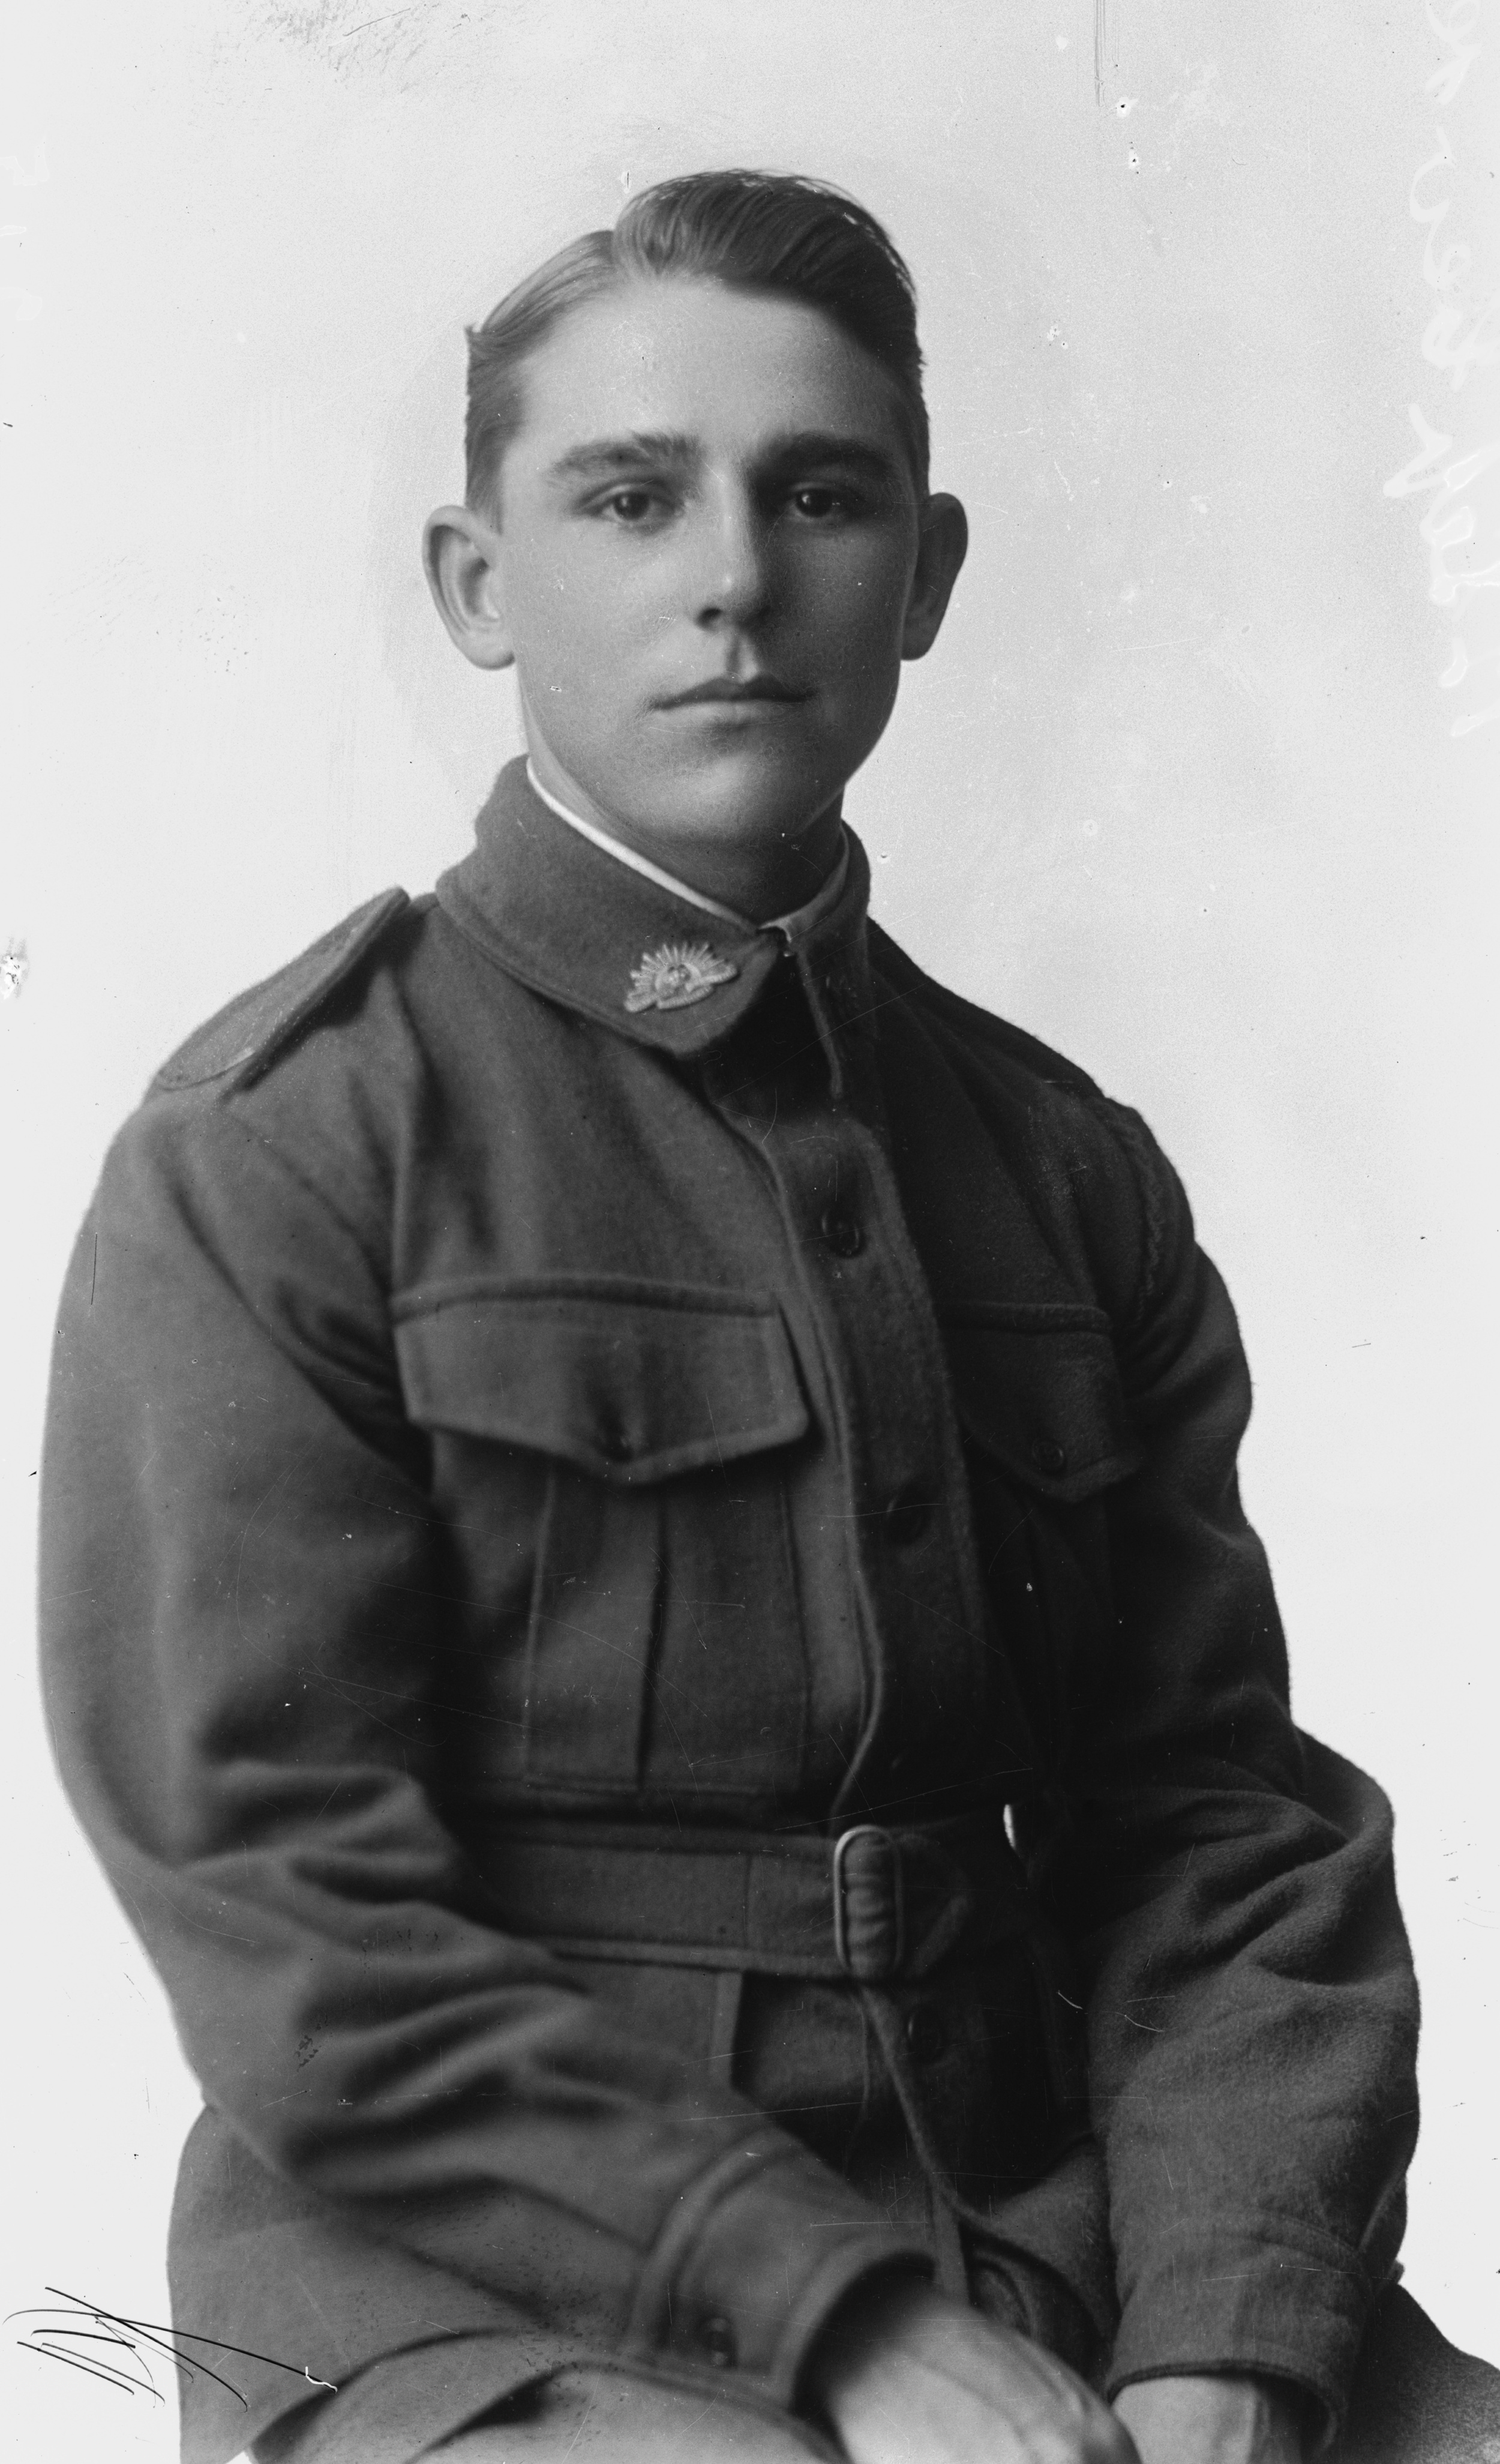 Photographed at the Dease Studio, 117 Barrack Street Perth WA Image courtesy of the State Library of Western Australia: 108274PD